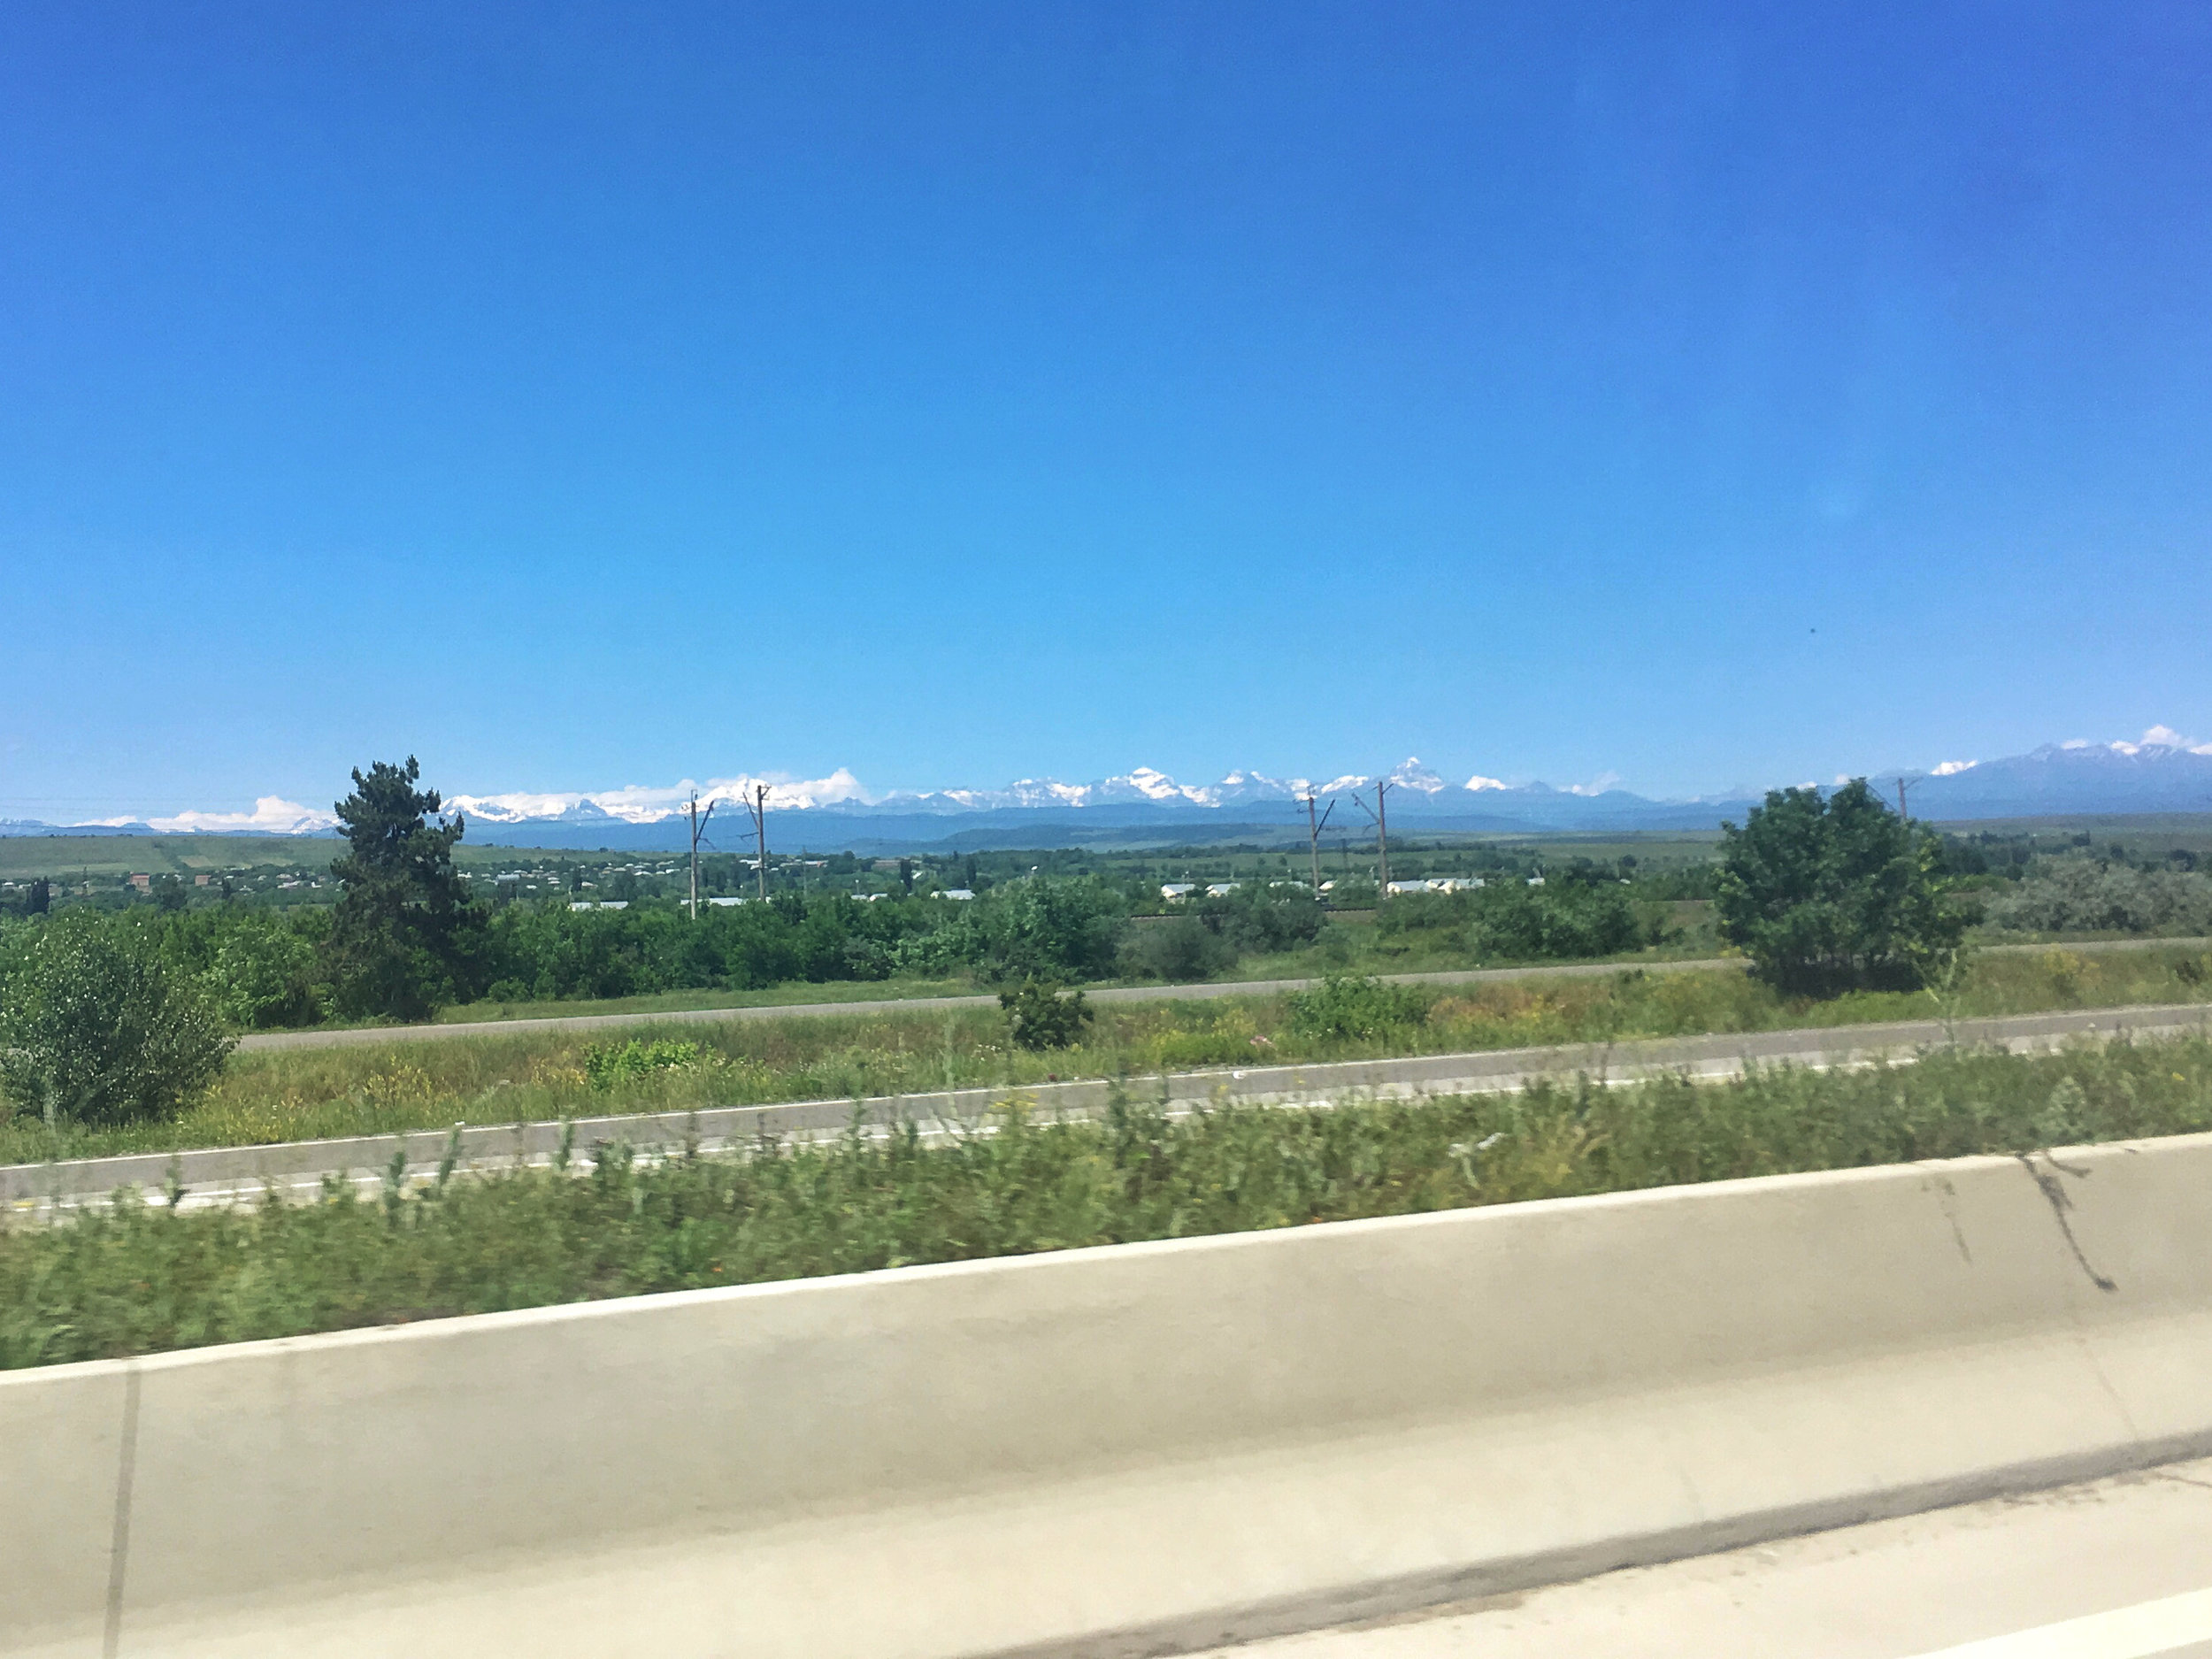 zooming by for now, but soon I will be all up in those mountains!